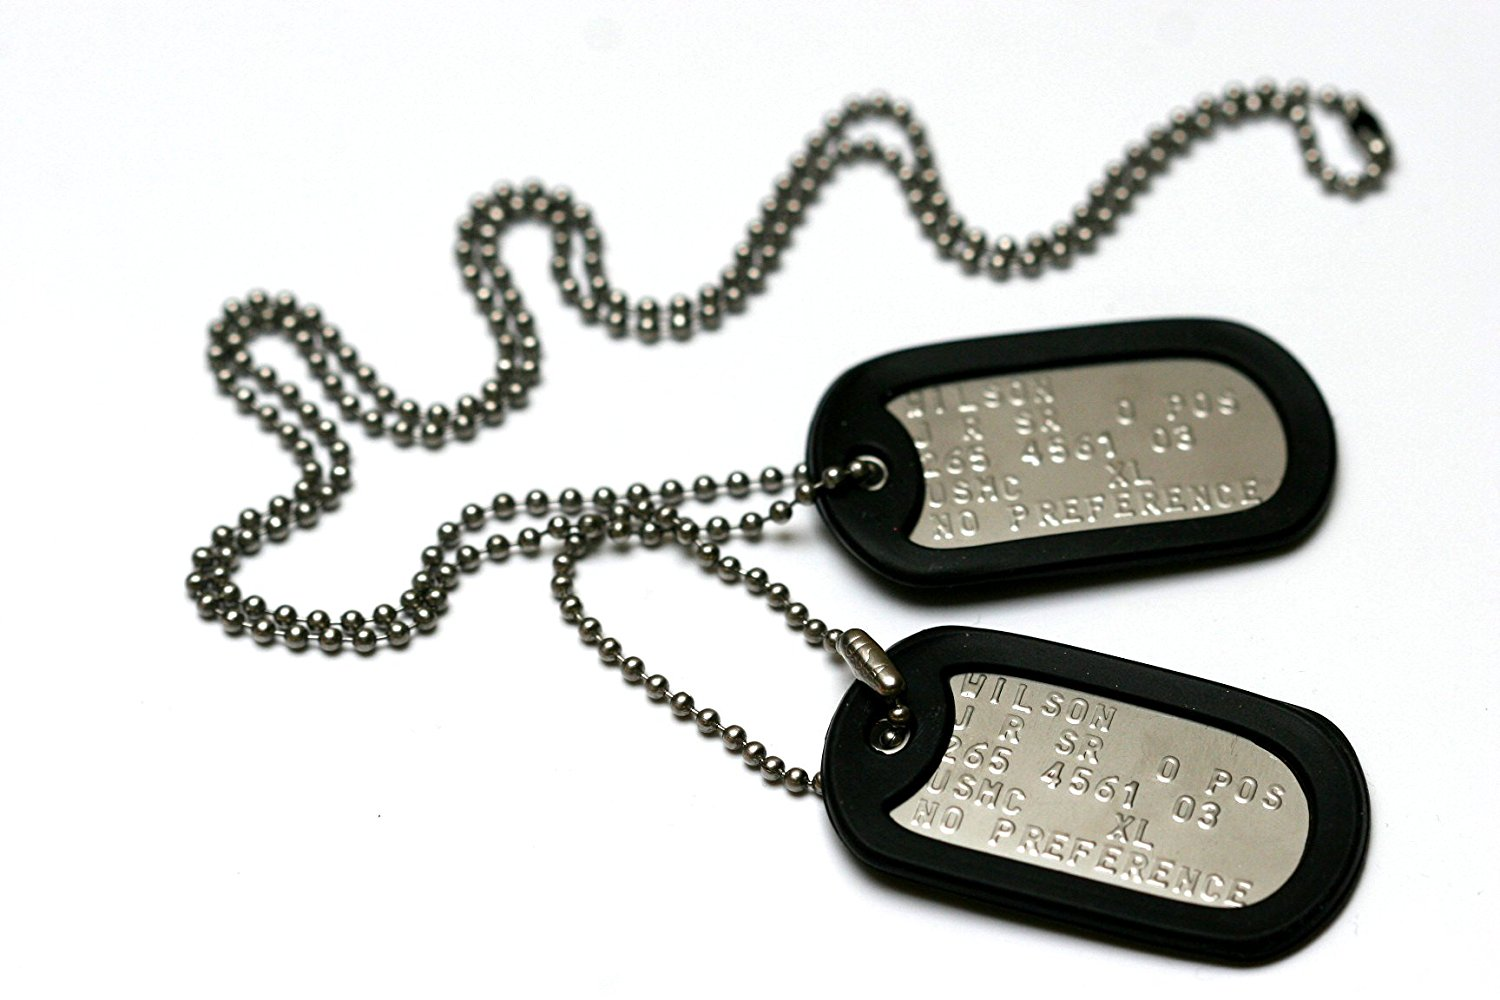 Army clipart necklace, Army necklace Transparent FREE for.